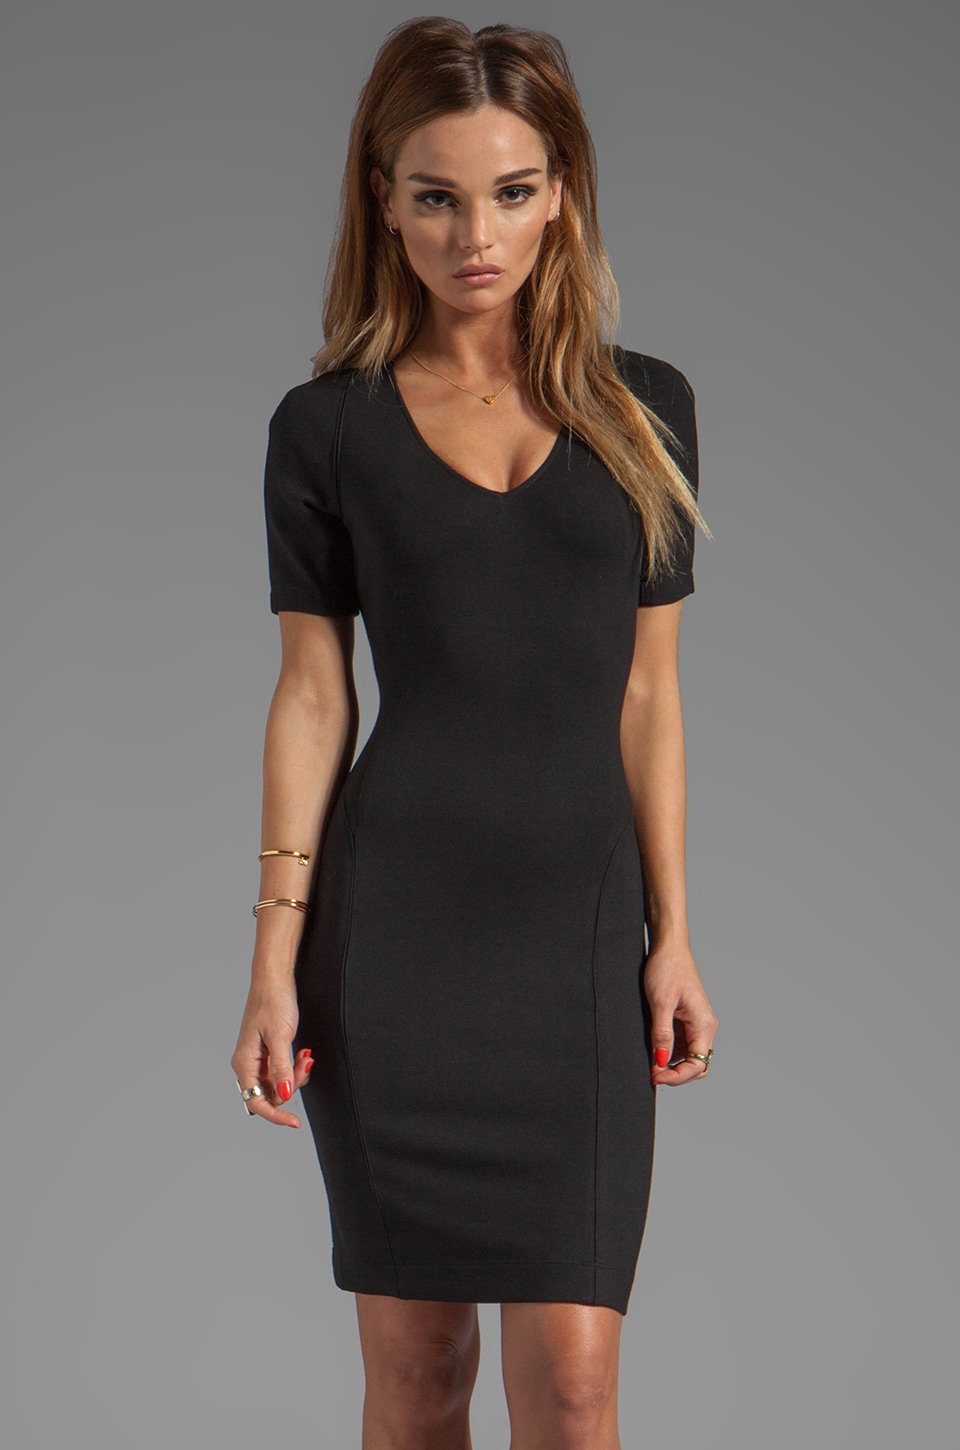 Theory Serto Dress in Black